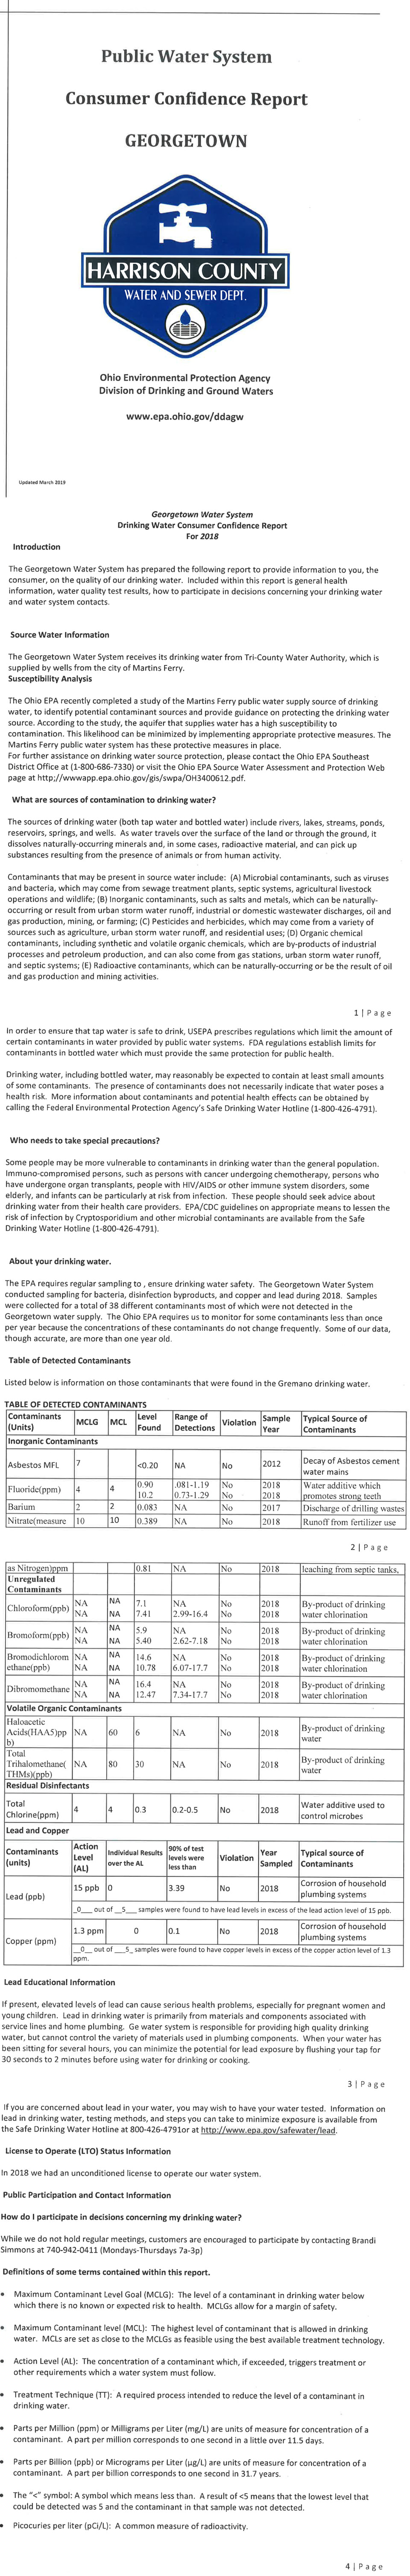 ccr-georgetown-201906050732_orig Quarterly Insurance Newsletter Templates on army engineer, format for, cpa client, medical department, greeting examples,